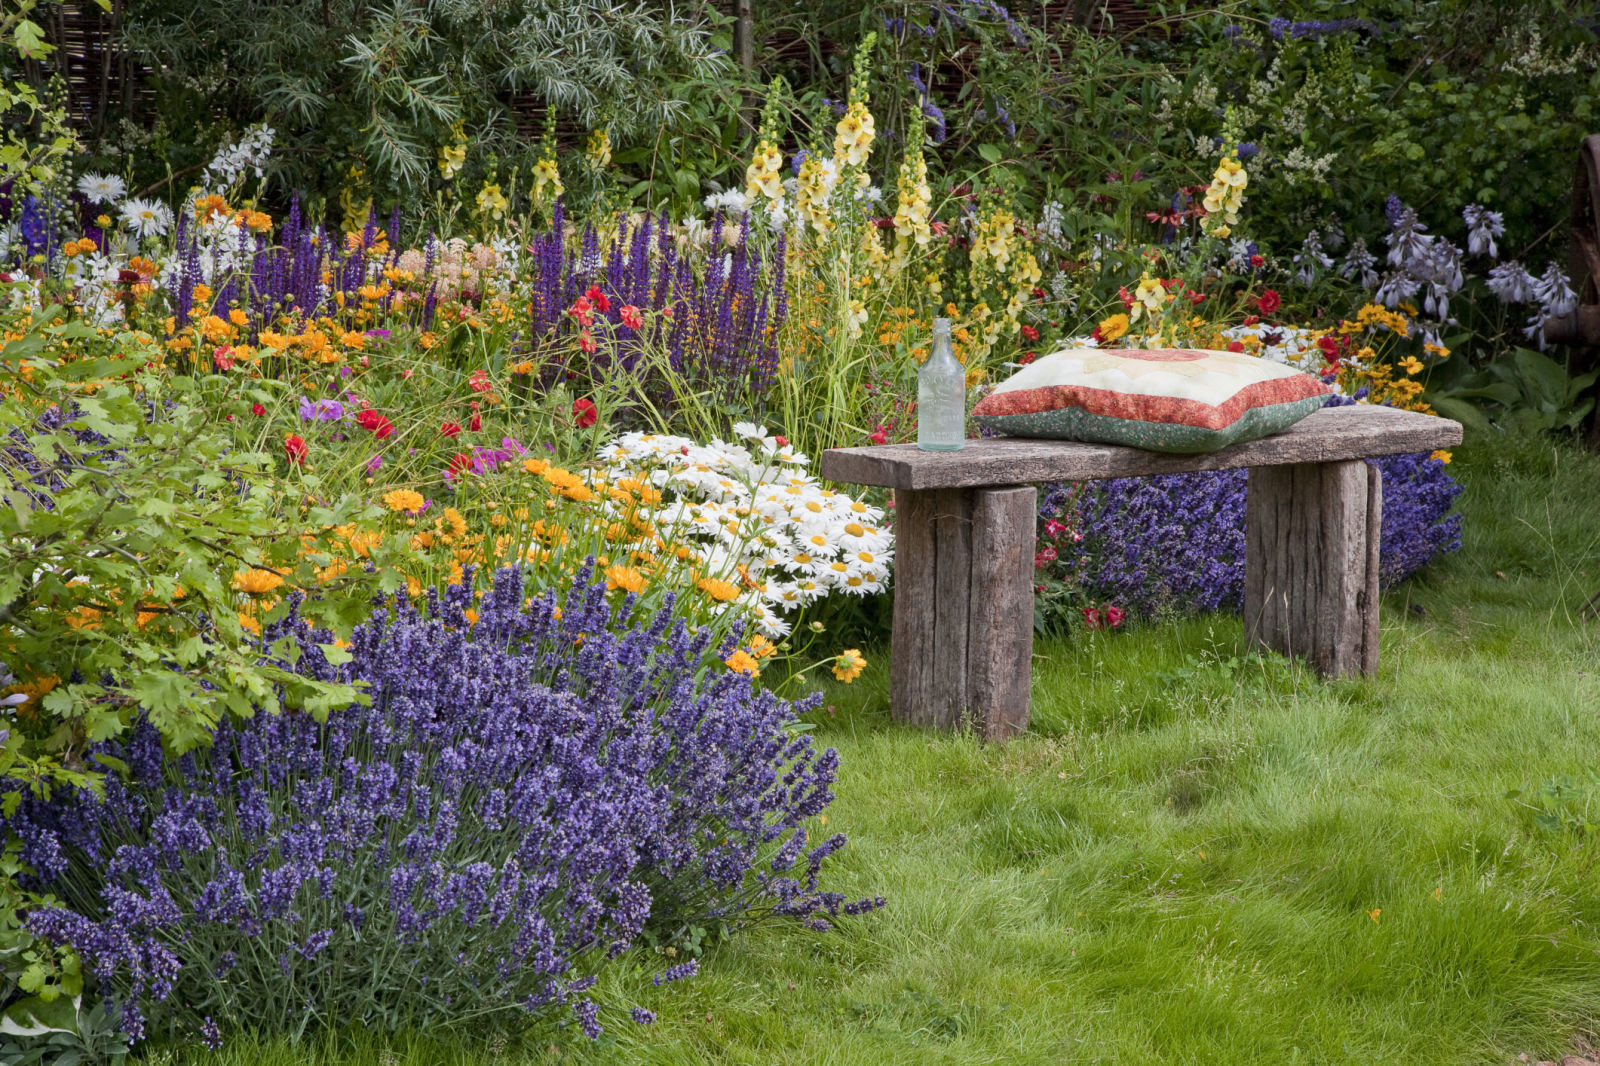 10 plants that repel mosquitoes natural mosquito repellent plants